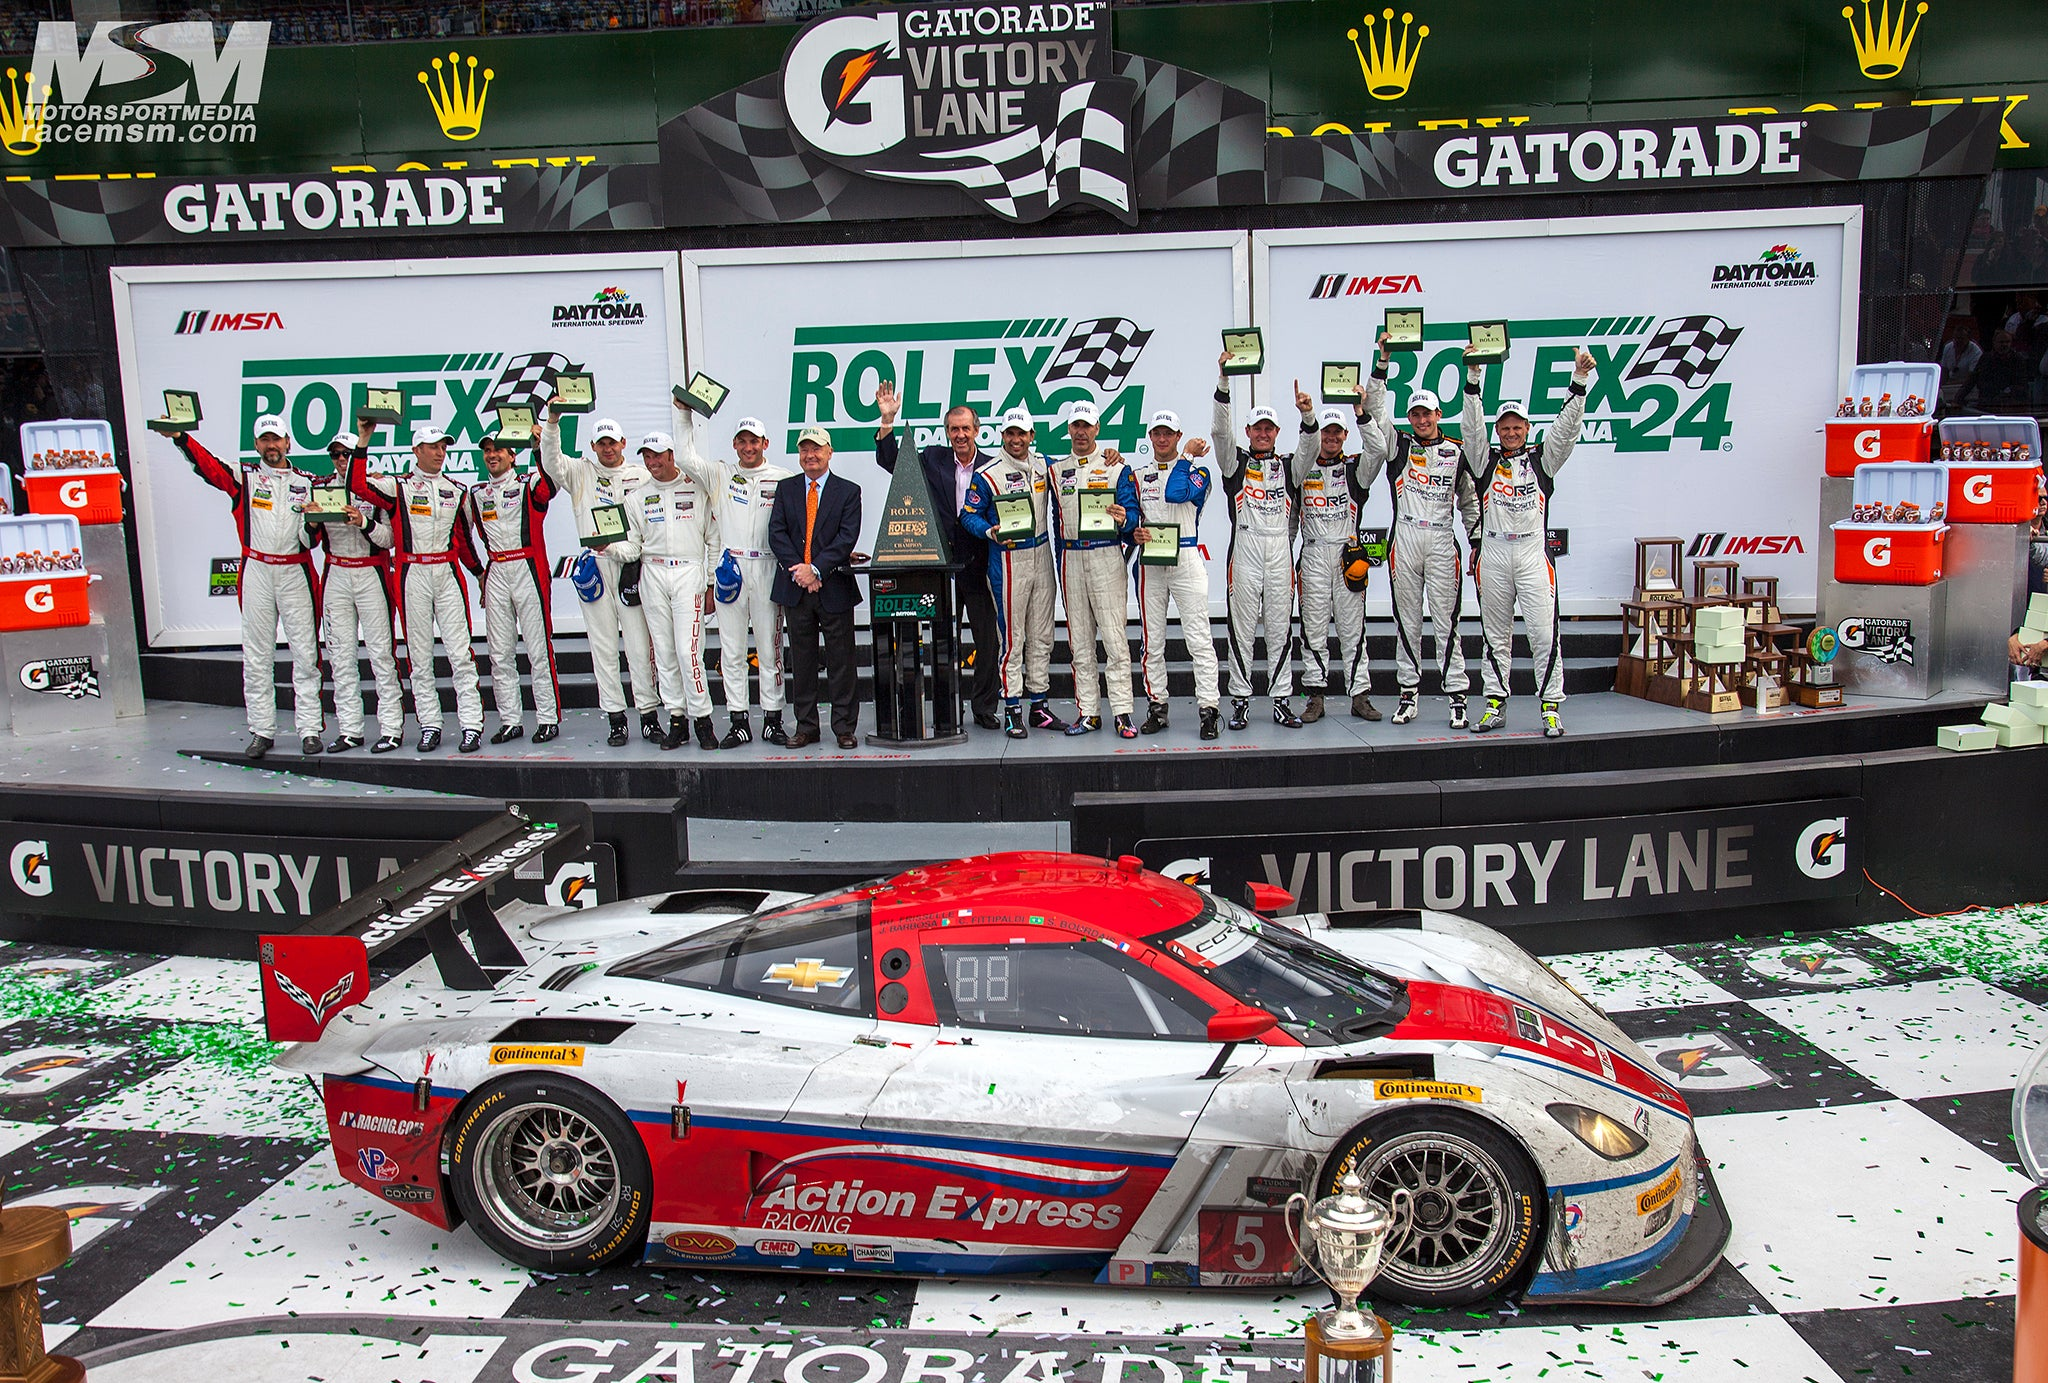 52nd Rolex 24 at Daytona - The Live Blog